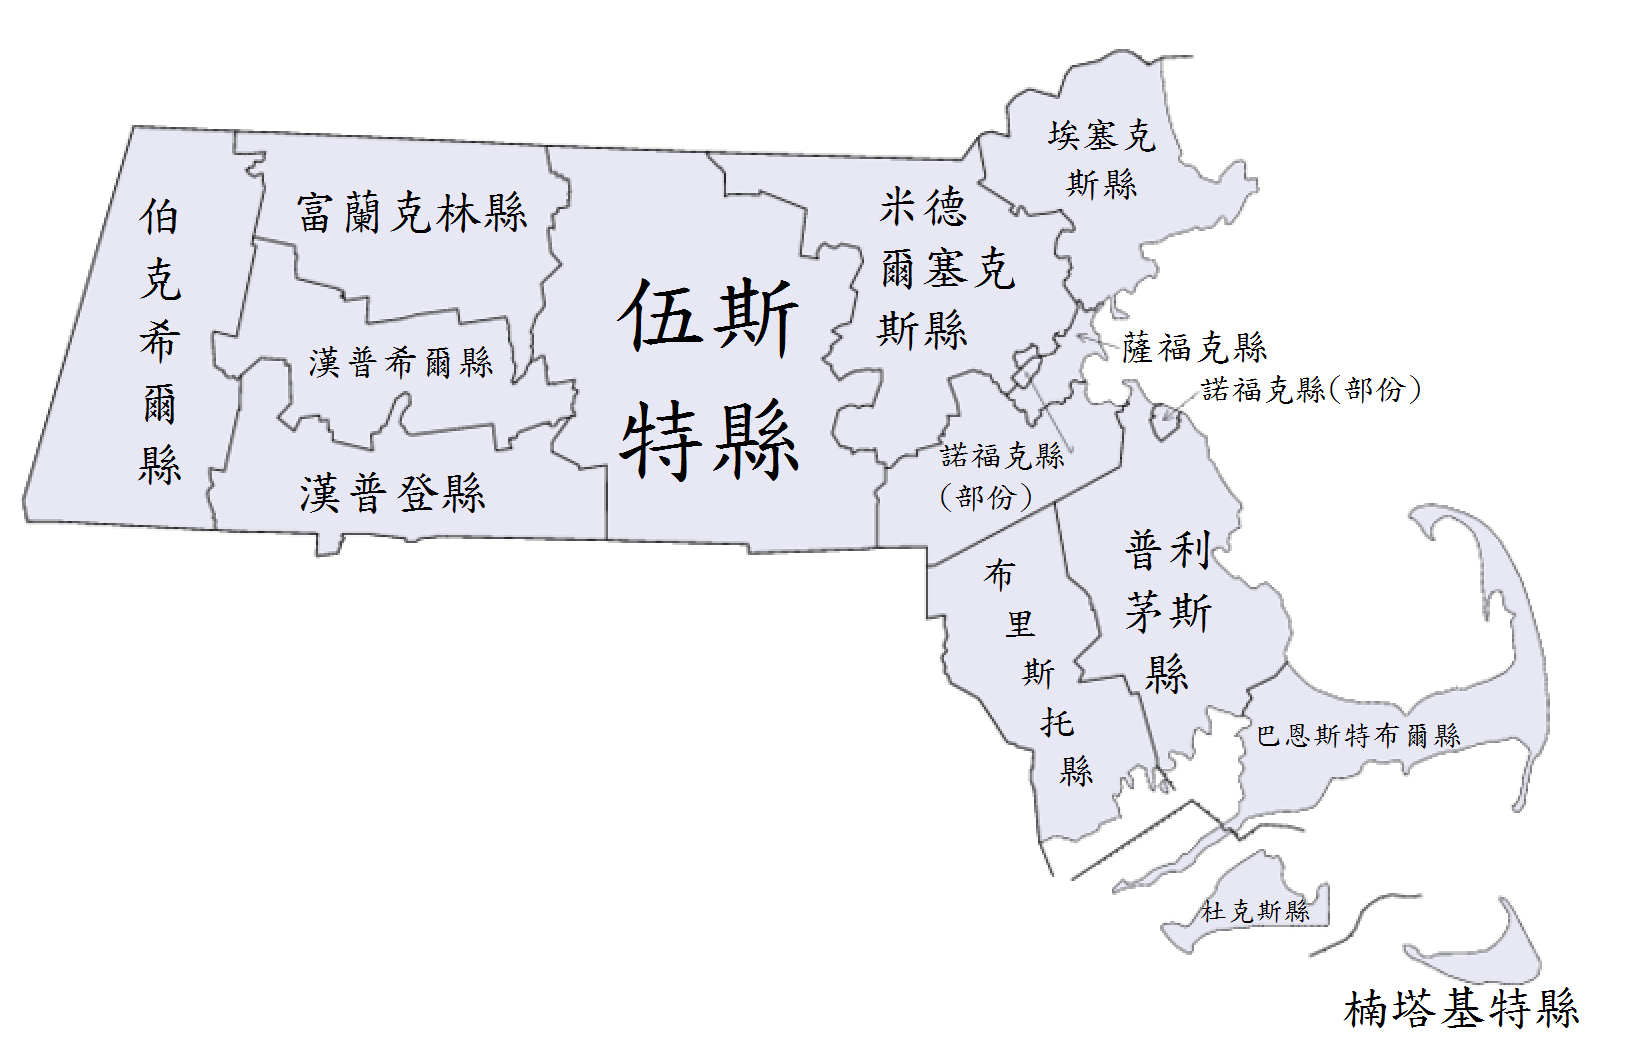 File:Machusetts-counties-map-hant.png - Wikimedia Commons on